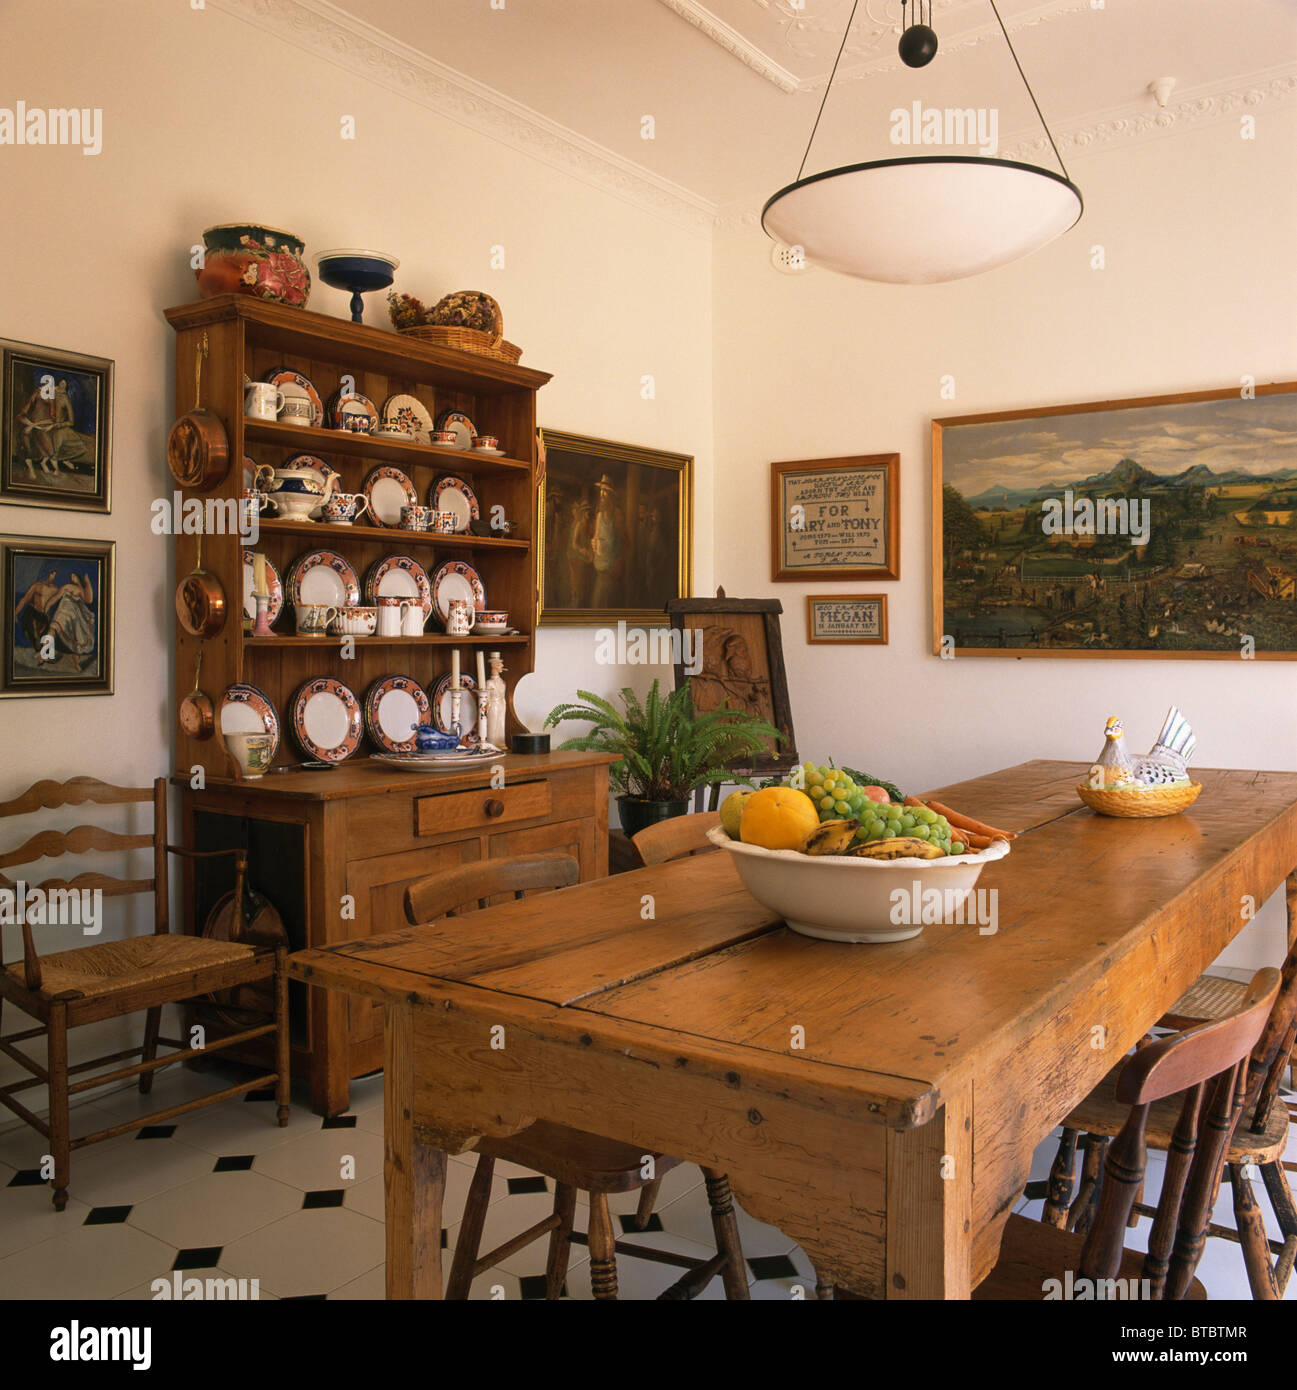 Antique Pine Table And Large Dresser In Traditional Dining Room With Large  Painting On The Wall